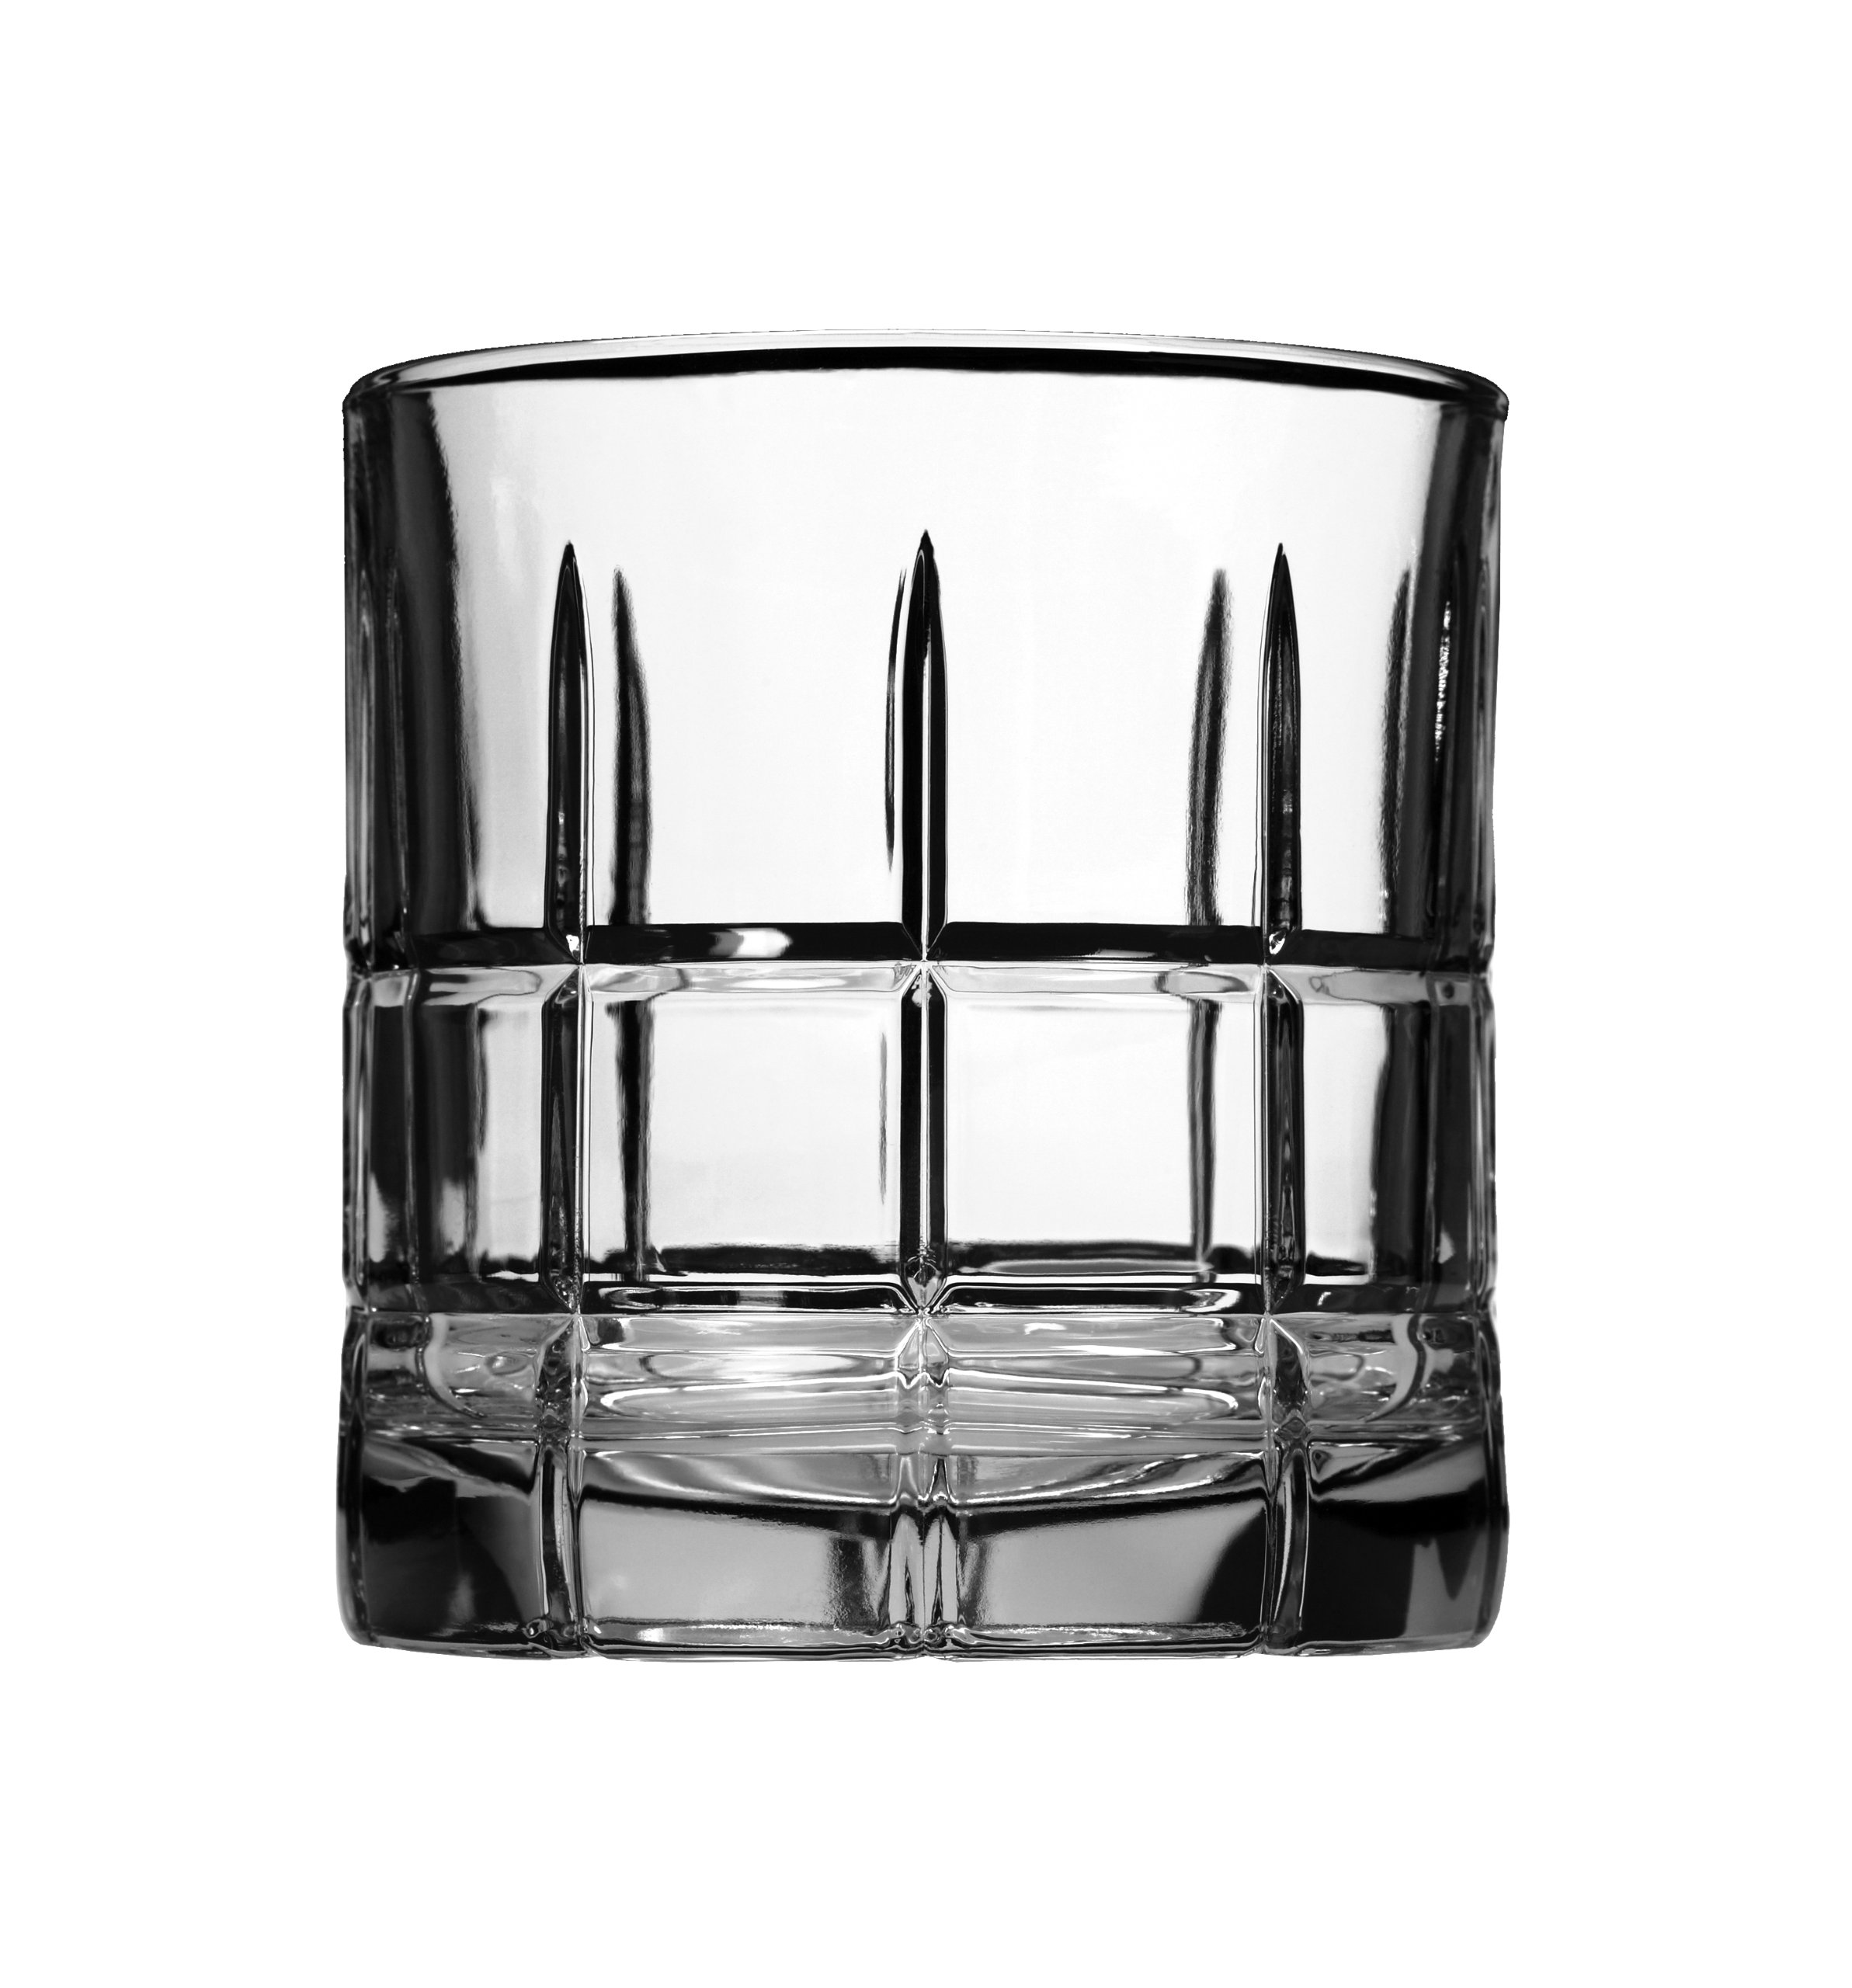 Anchor Hocking Manchester Rocks Old Fashioned Whiskey Glasses, 10.5 oz (Set of 12)